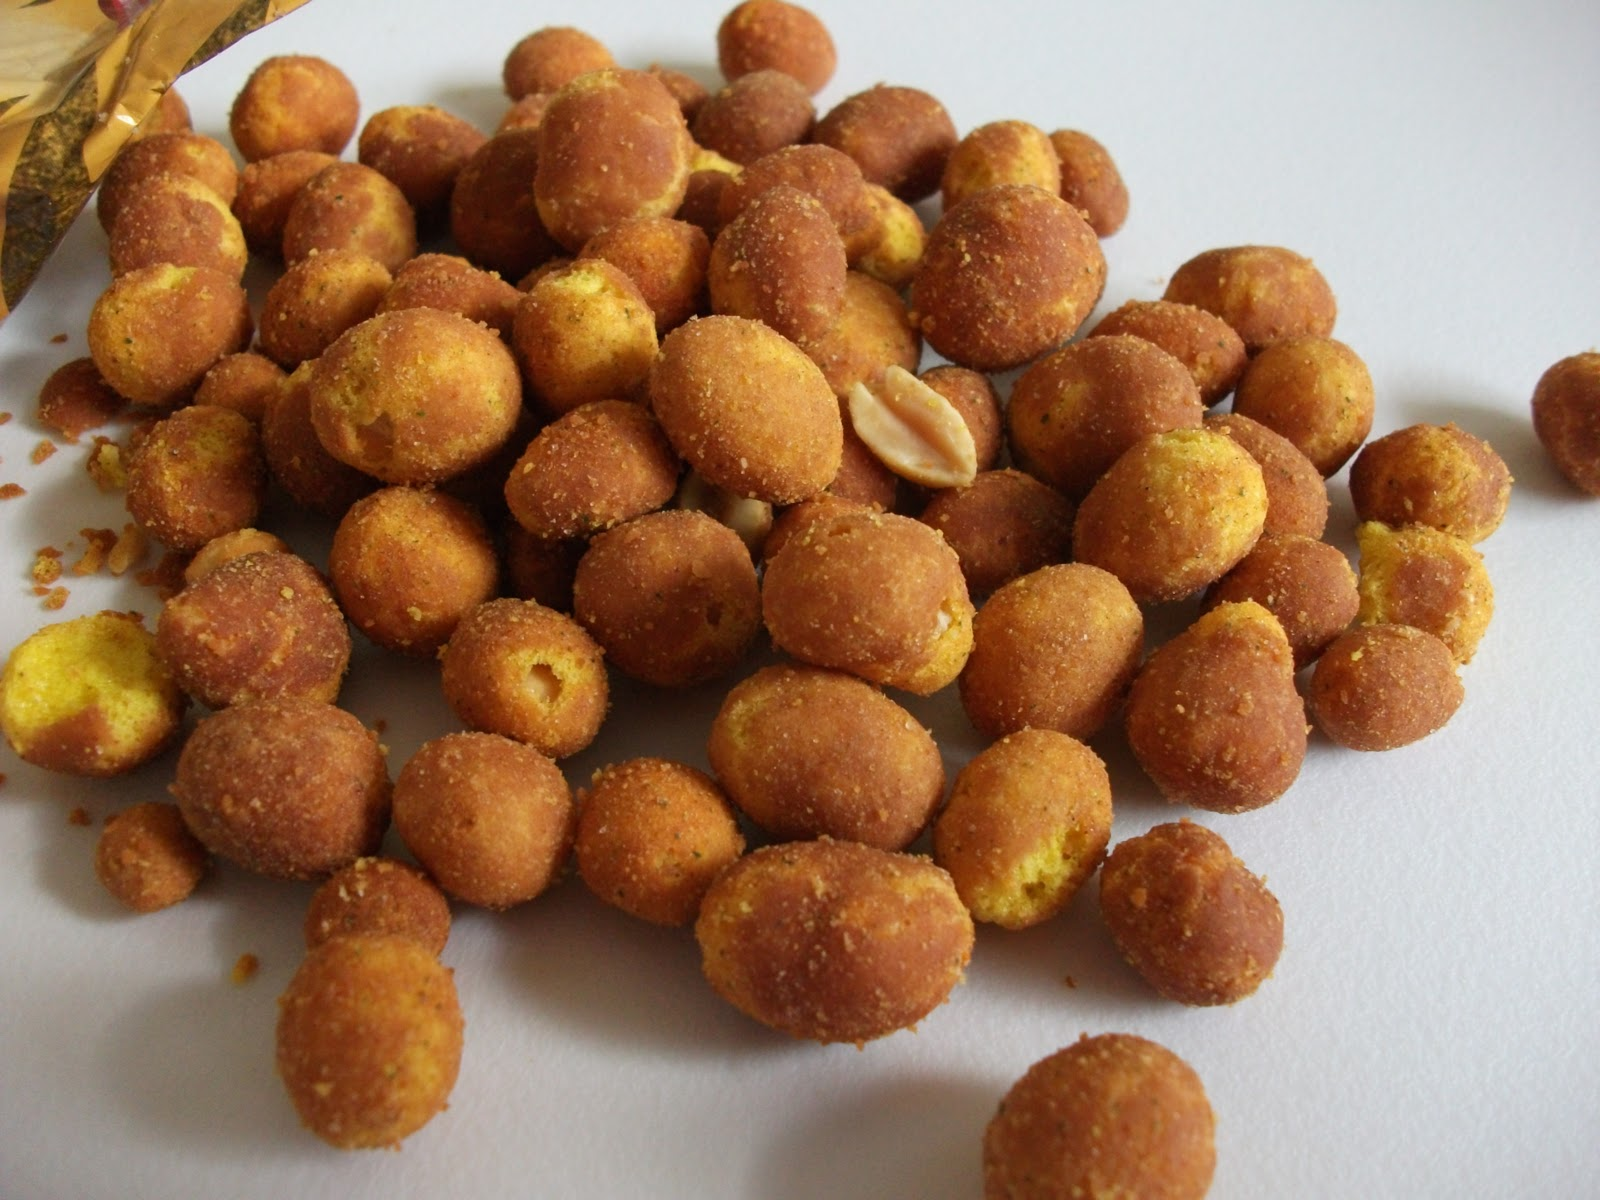 masala curry masala curry these have a golden yellow shell the curry ...